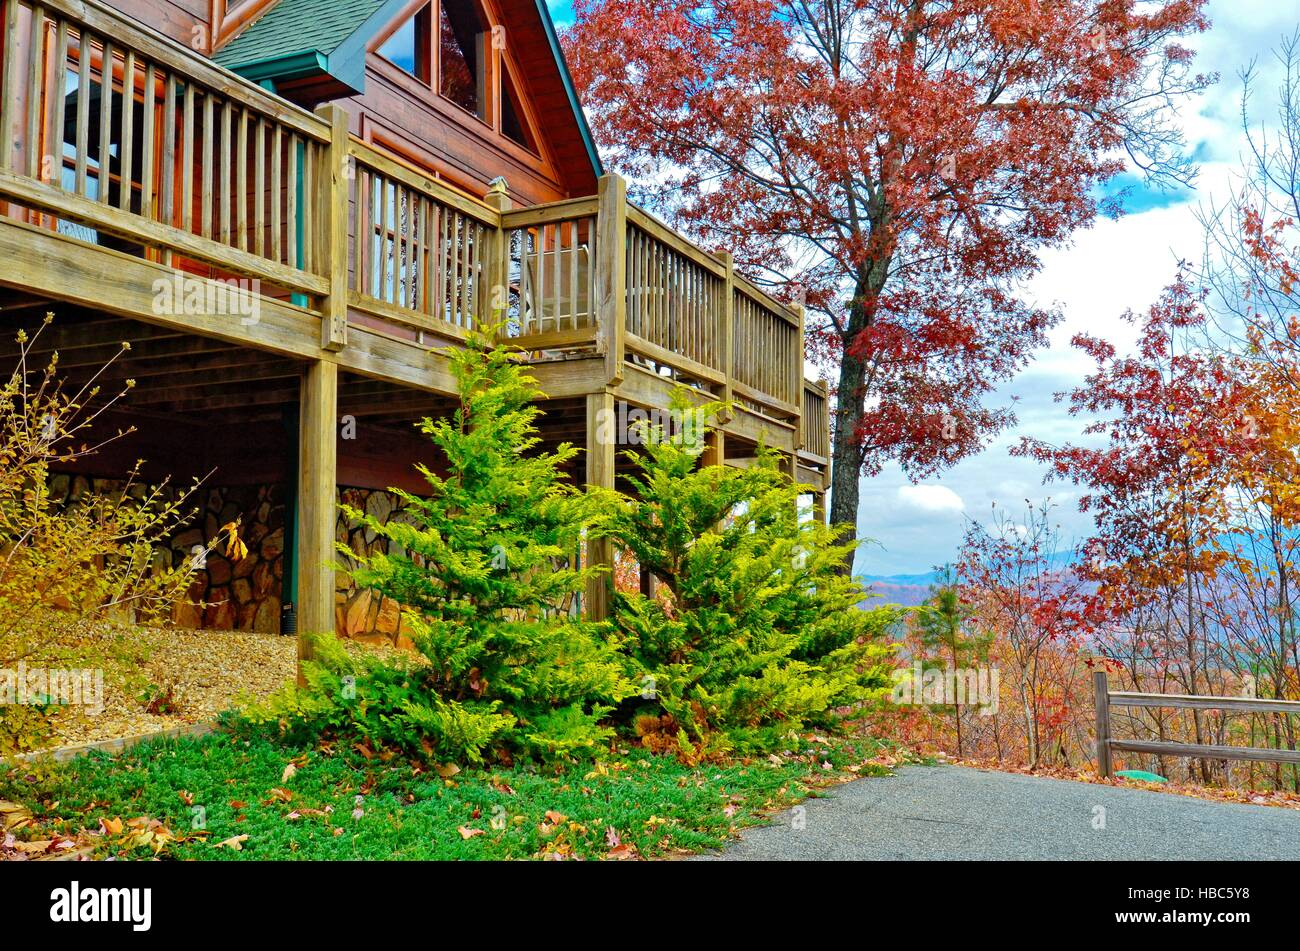 A wooden deck on the side of a log house in the mountains. - Stock Image